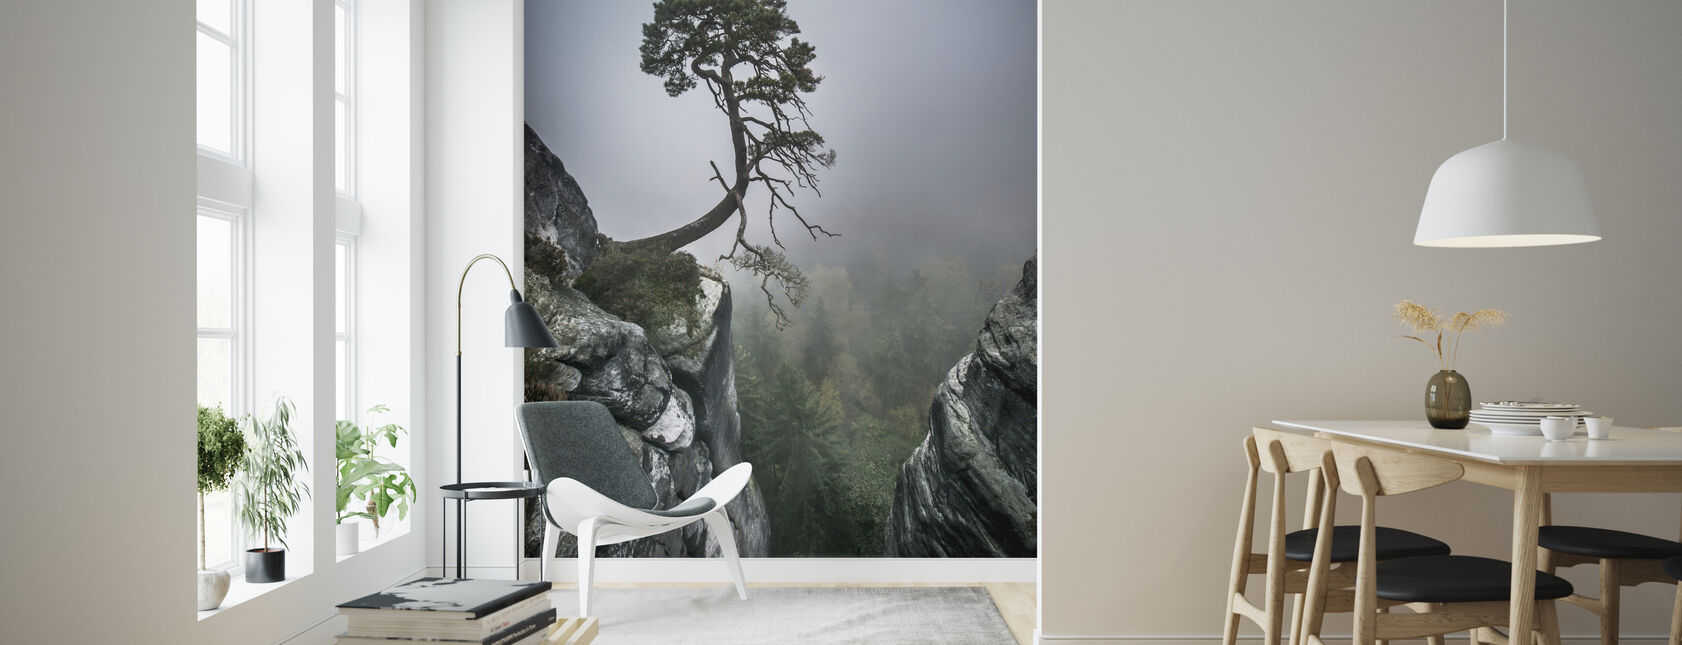 Tree on Mountain - Wallpaper - Living Room